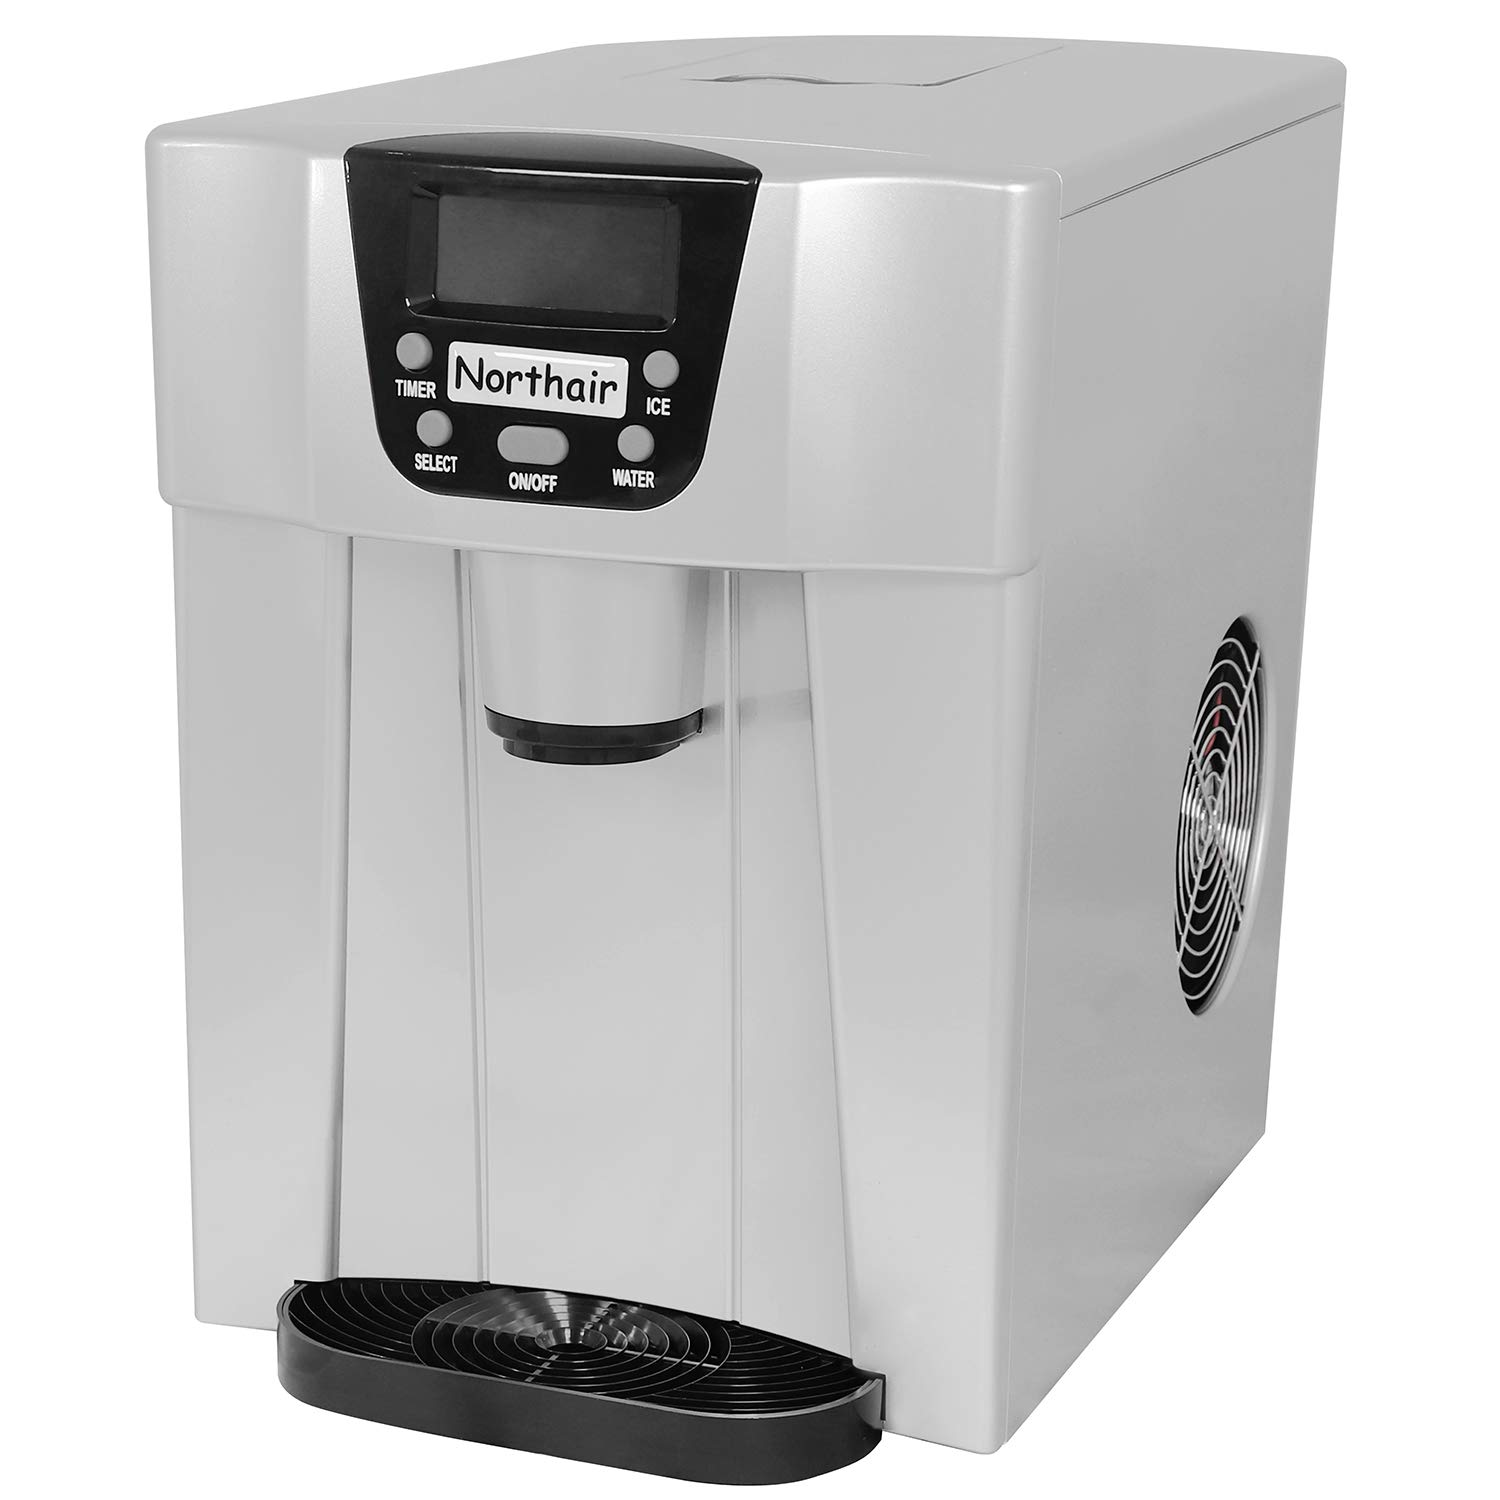 Northair 24 Hour Ice Maker and Water Dispenser with Automatic Shut-down System,S-L 2 Size Bullet Ice, with LCD Display,Silver